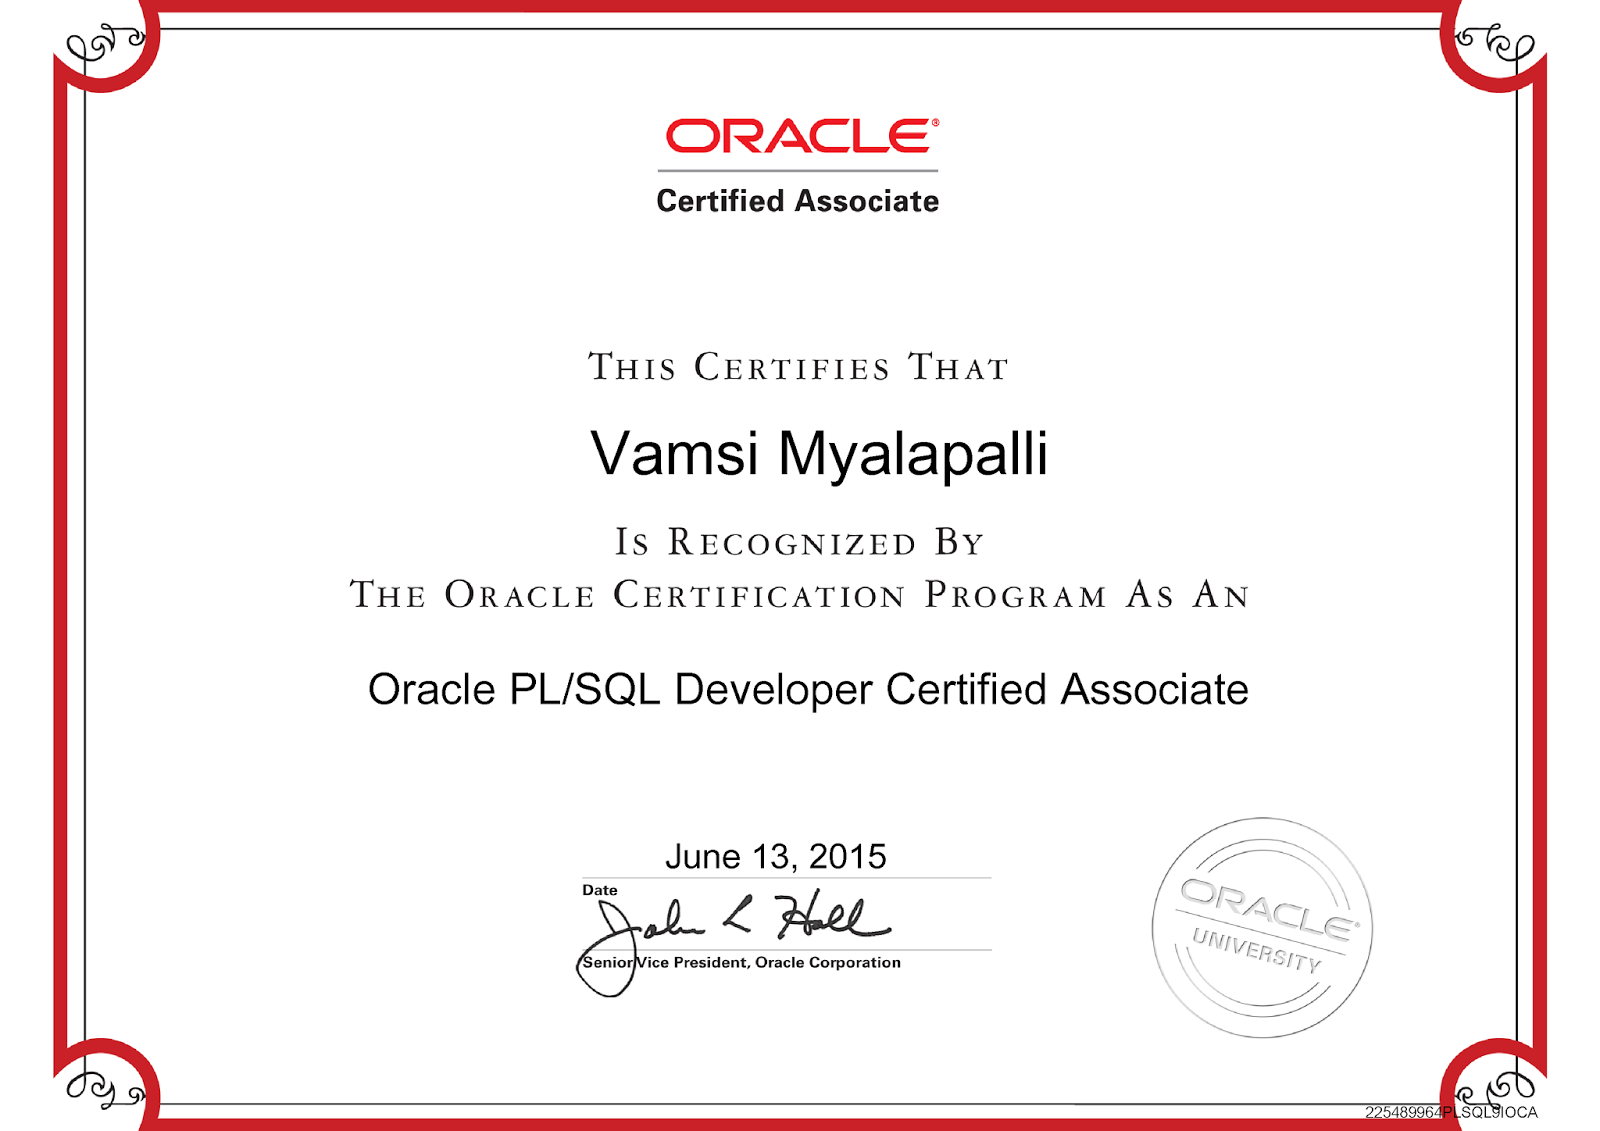 Vamsi krishna myalapalli vamsi krishna myalapalli oracle certified pl sql developer 1betcityfo Image collections